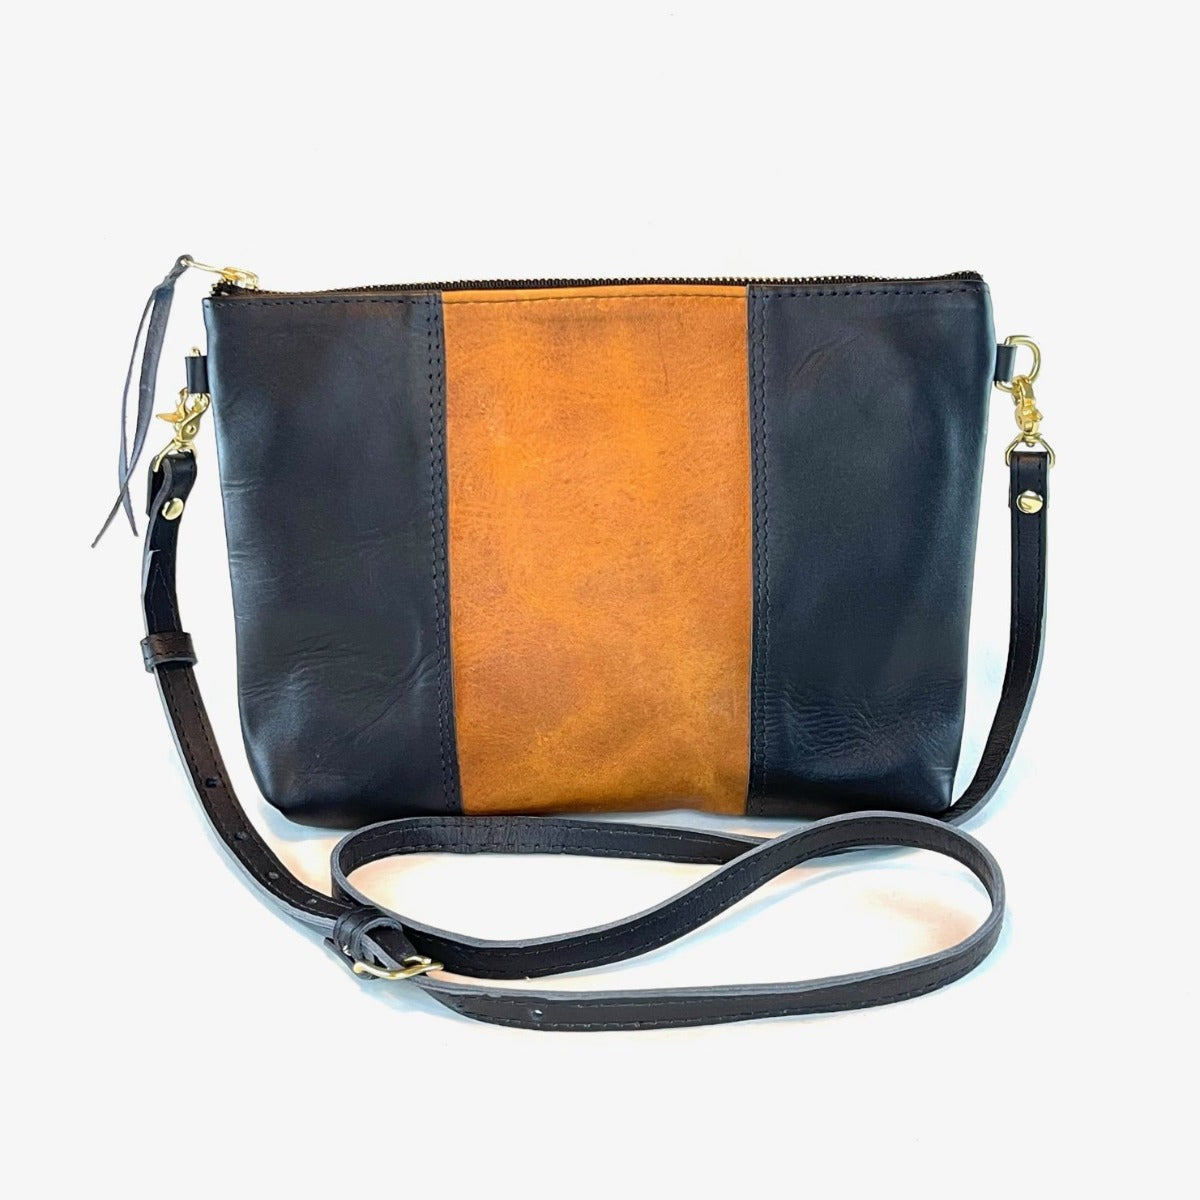 "Antigua Two Tone Leather Cross Body Clutch (1"" base)"